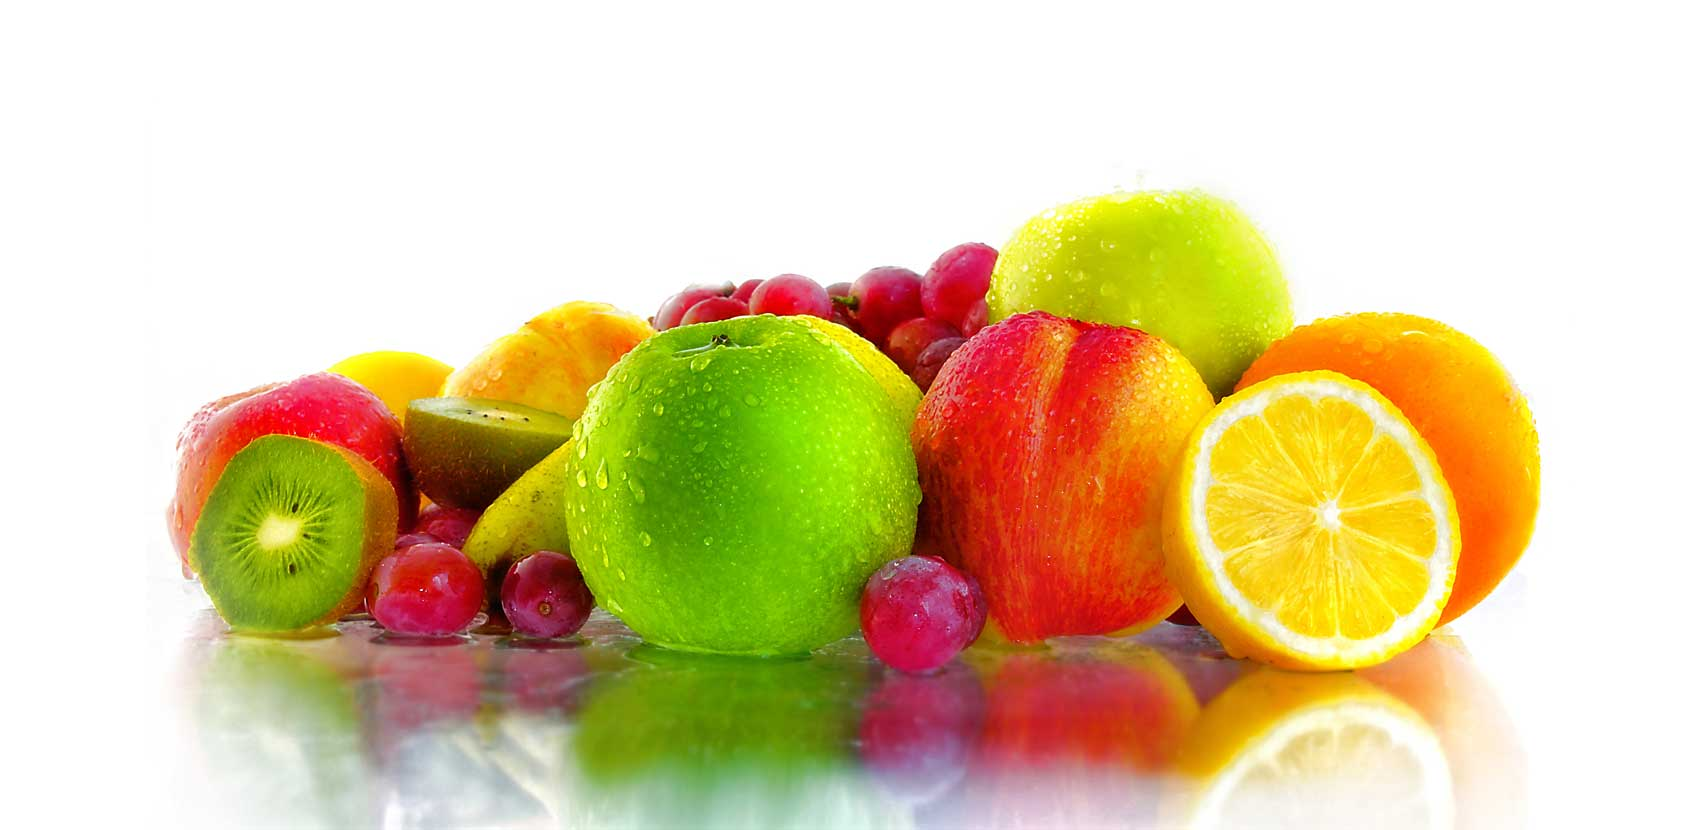 fruits facts amazing facts of fruits you probably did not know